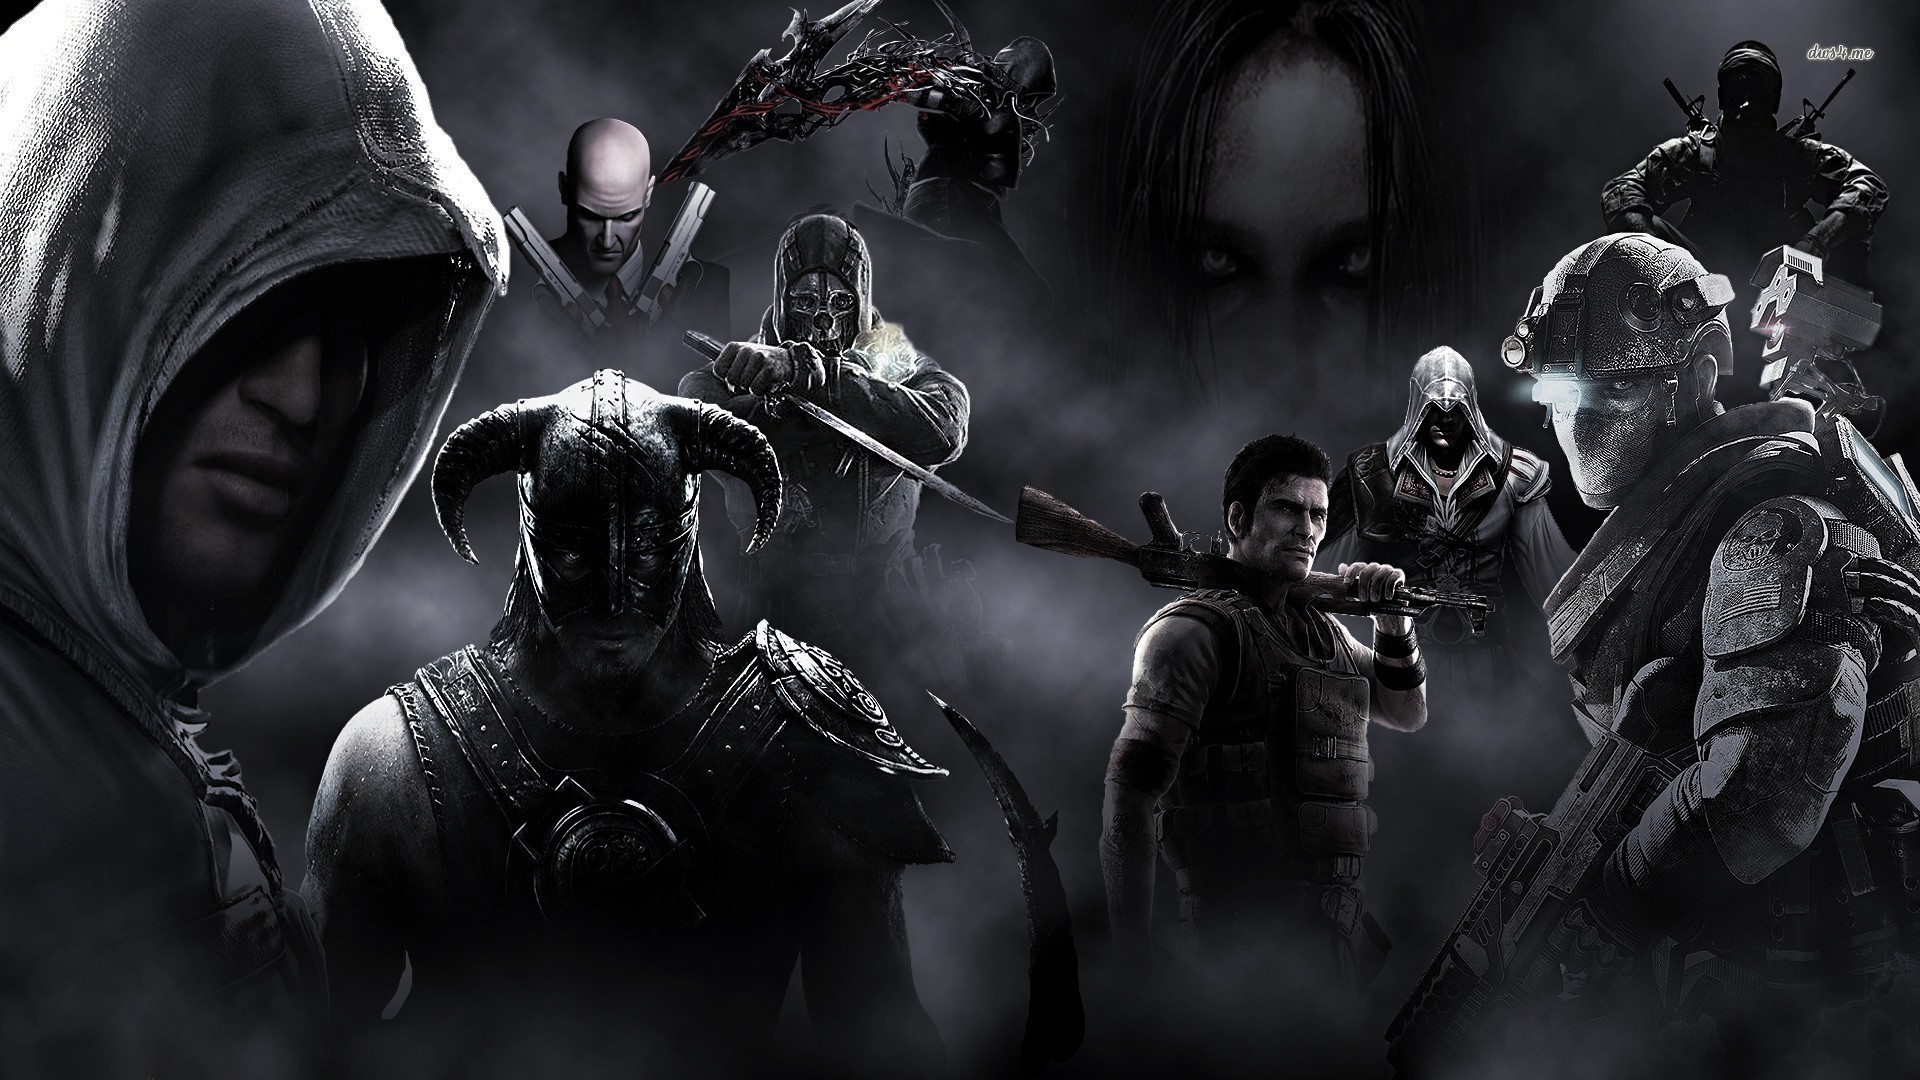 game characters wallpaper 1280x800 - photo #3